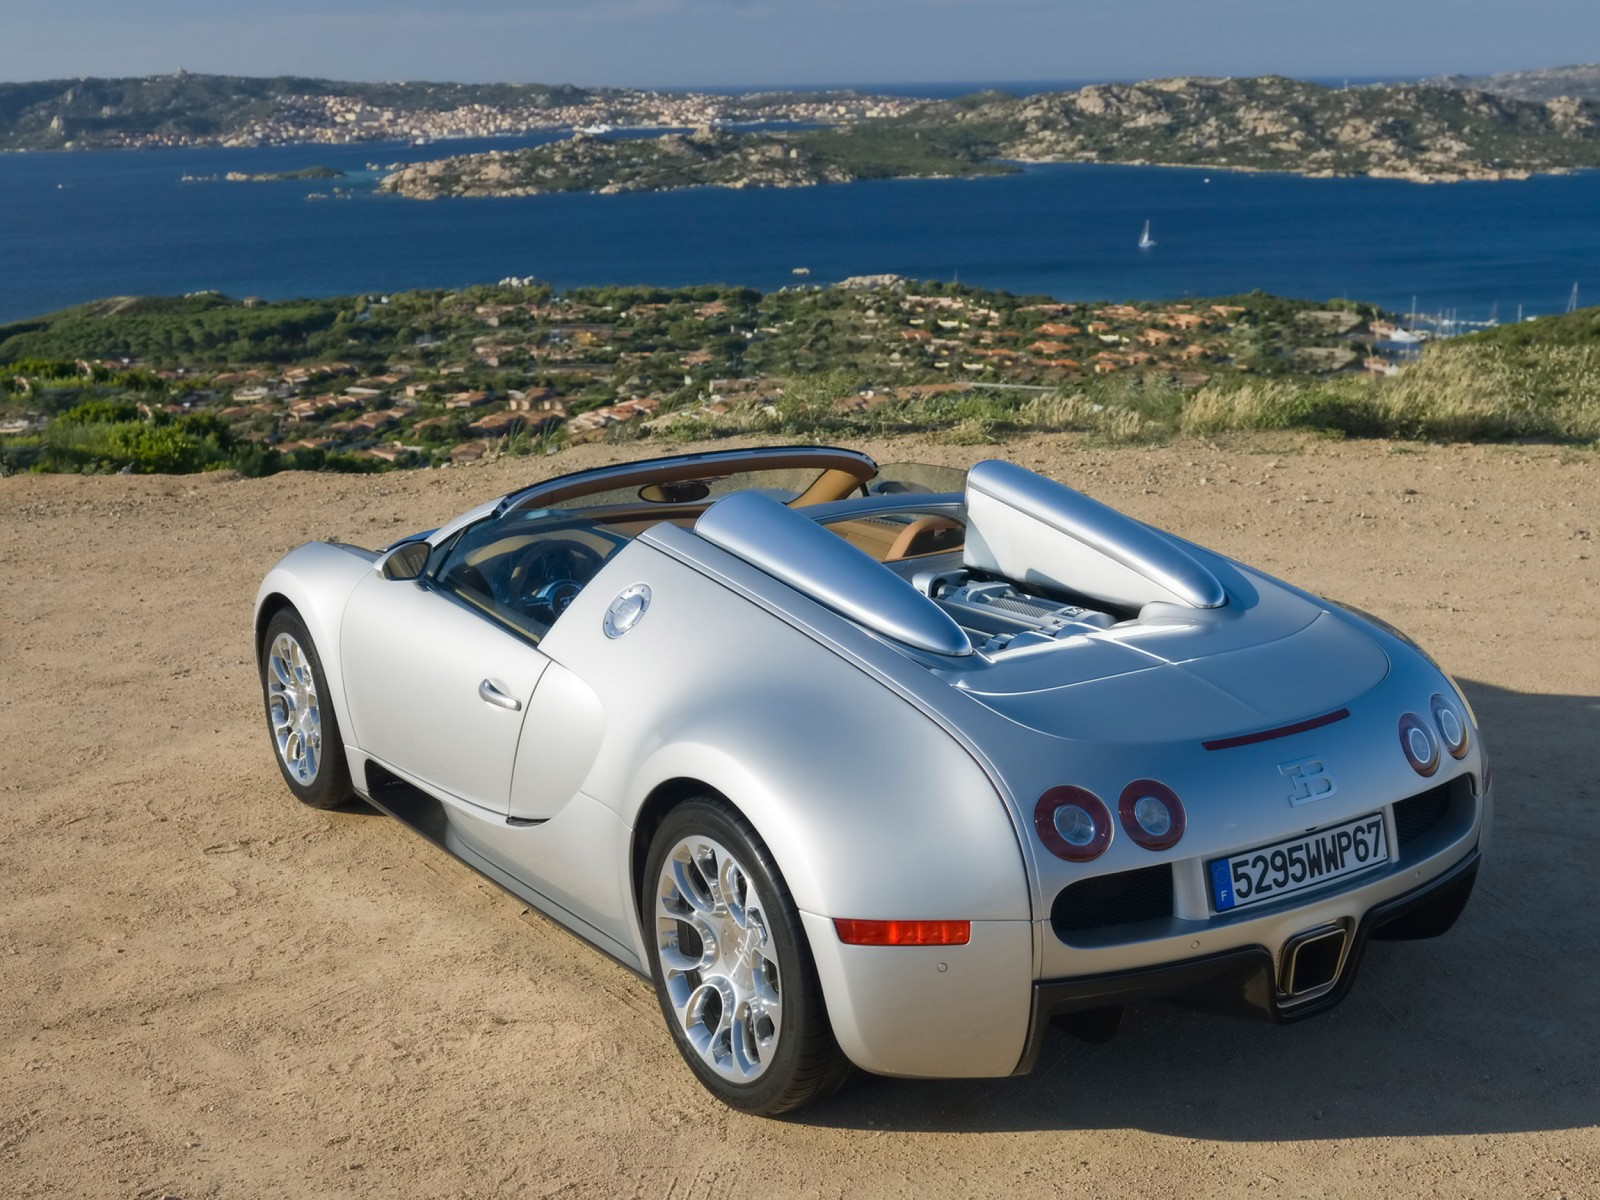 2010 bugatti veyron grand sport motor desktop. Black Bedroom Furniture Sets. Home Design Ideas